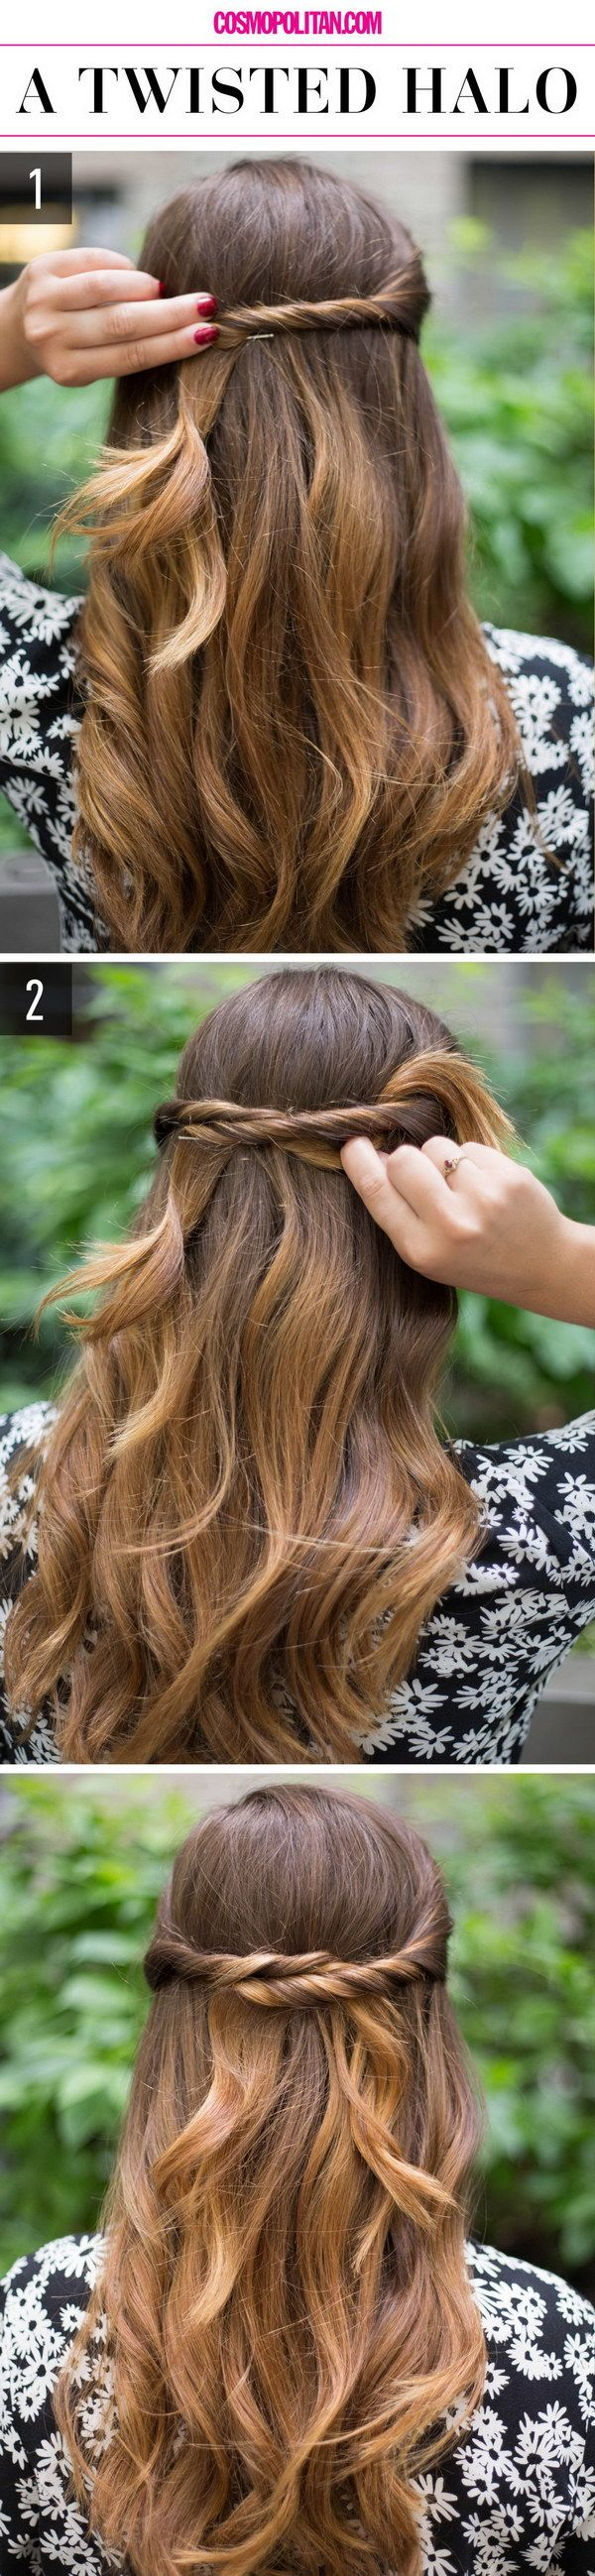 stunning half up half down hairstyles hair style makeup and